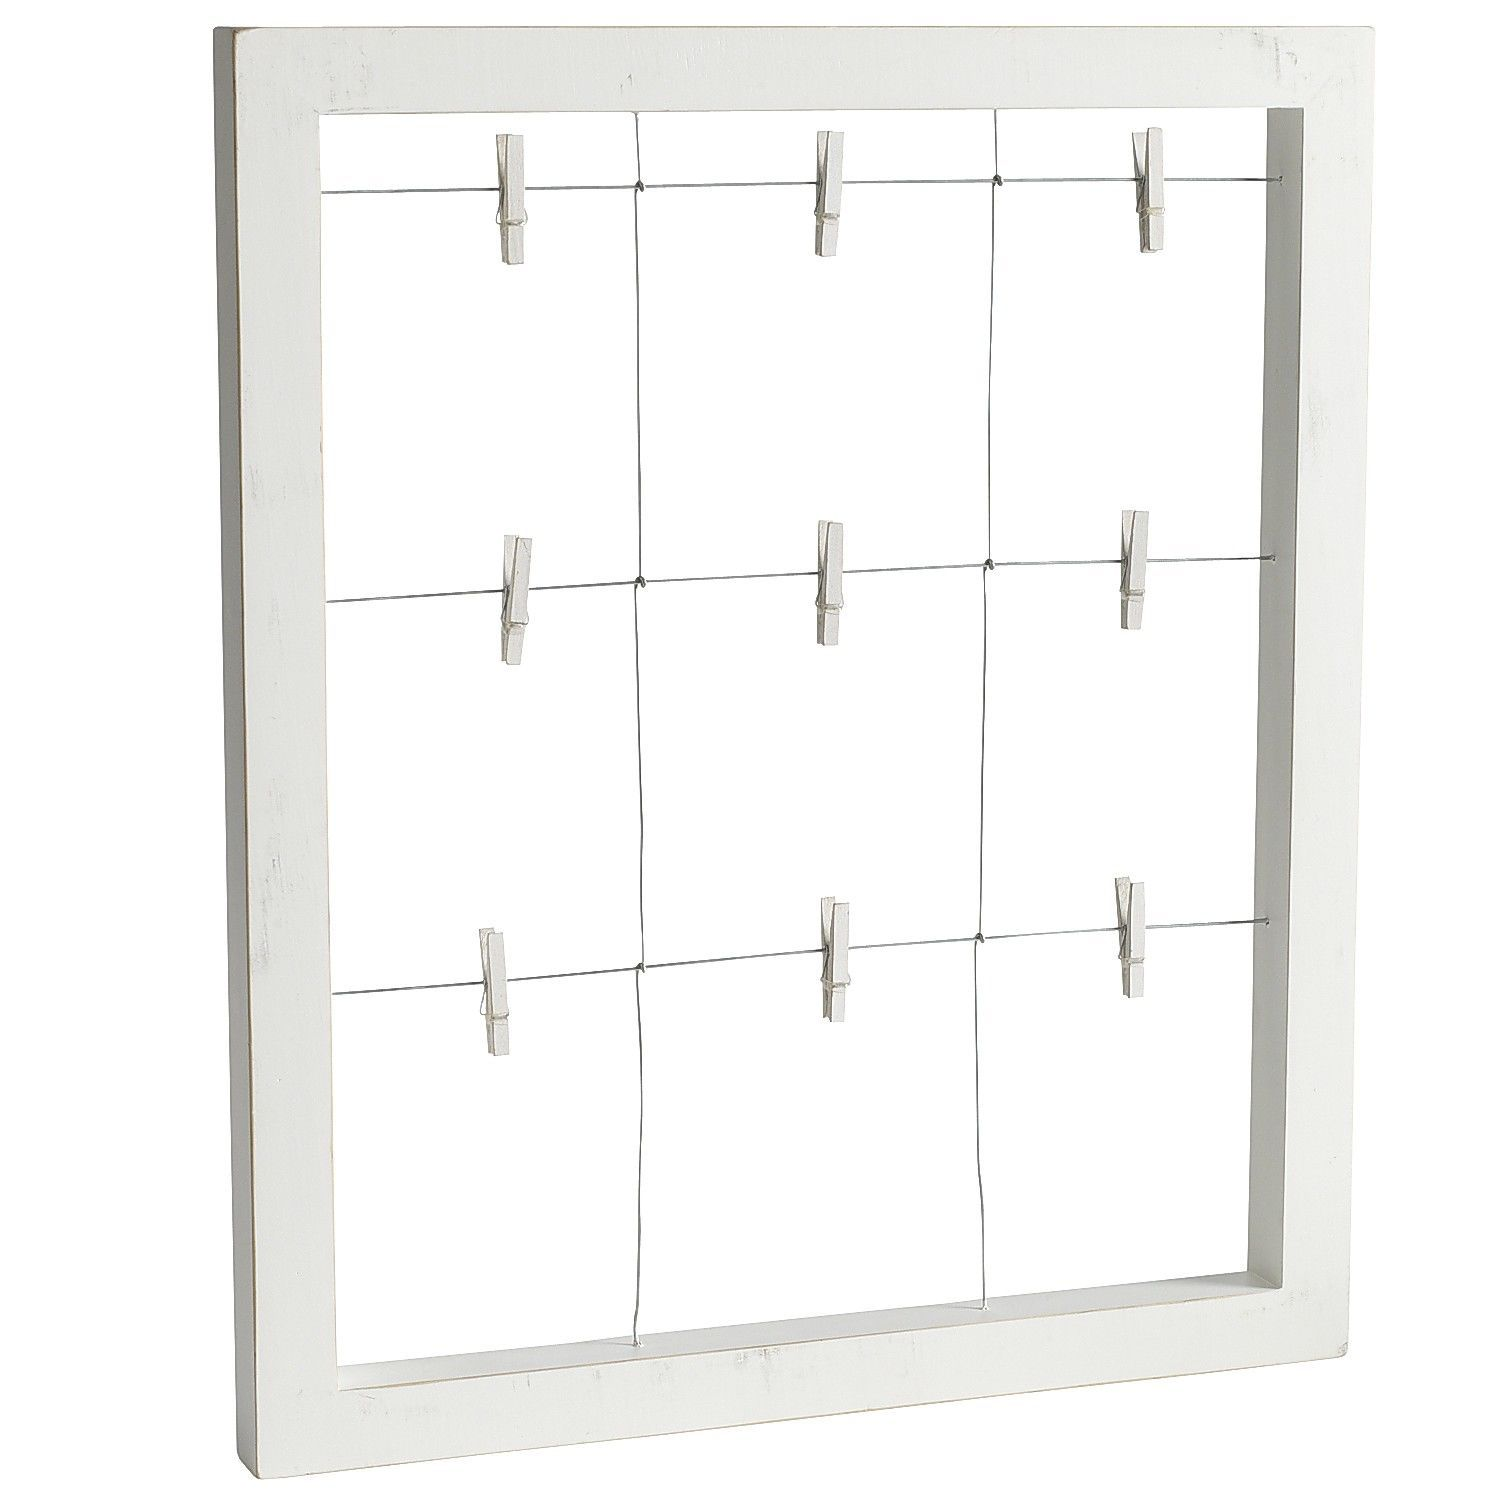 window clip frame white pier 1 imports - Window Clip Frame